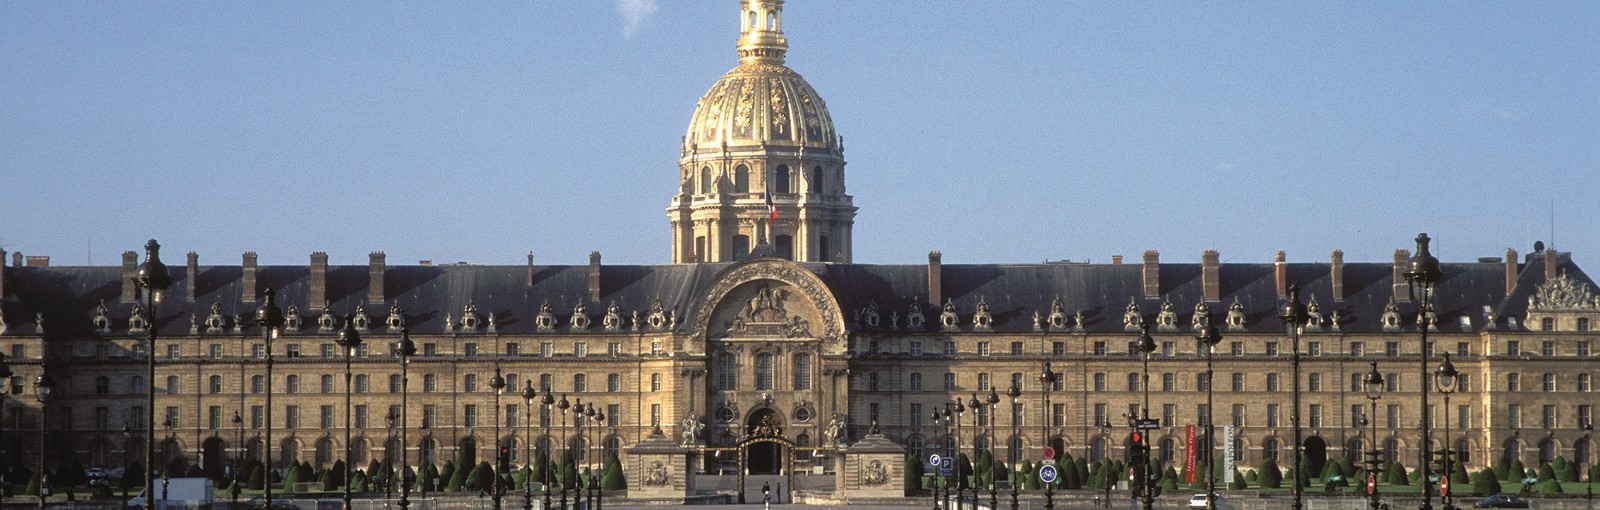 Tours The Invalides, the Army Museum, the Tomb of Napoleon - Walking tours - Paris Tours